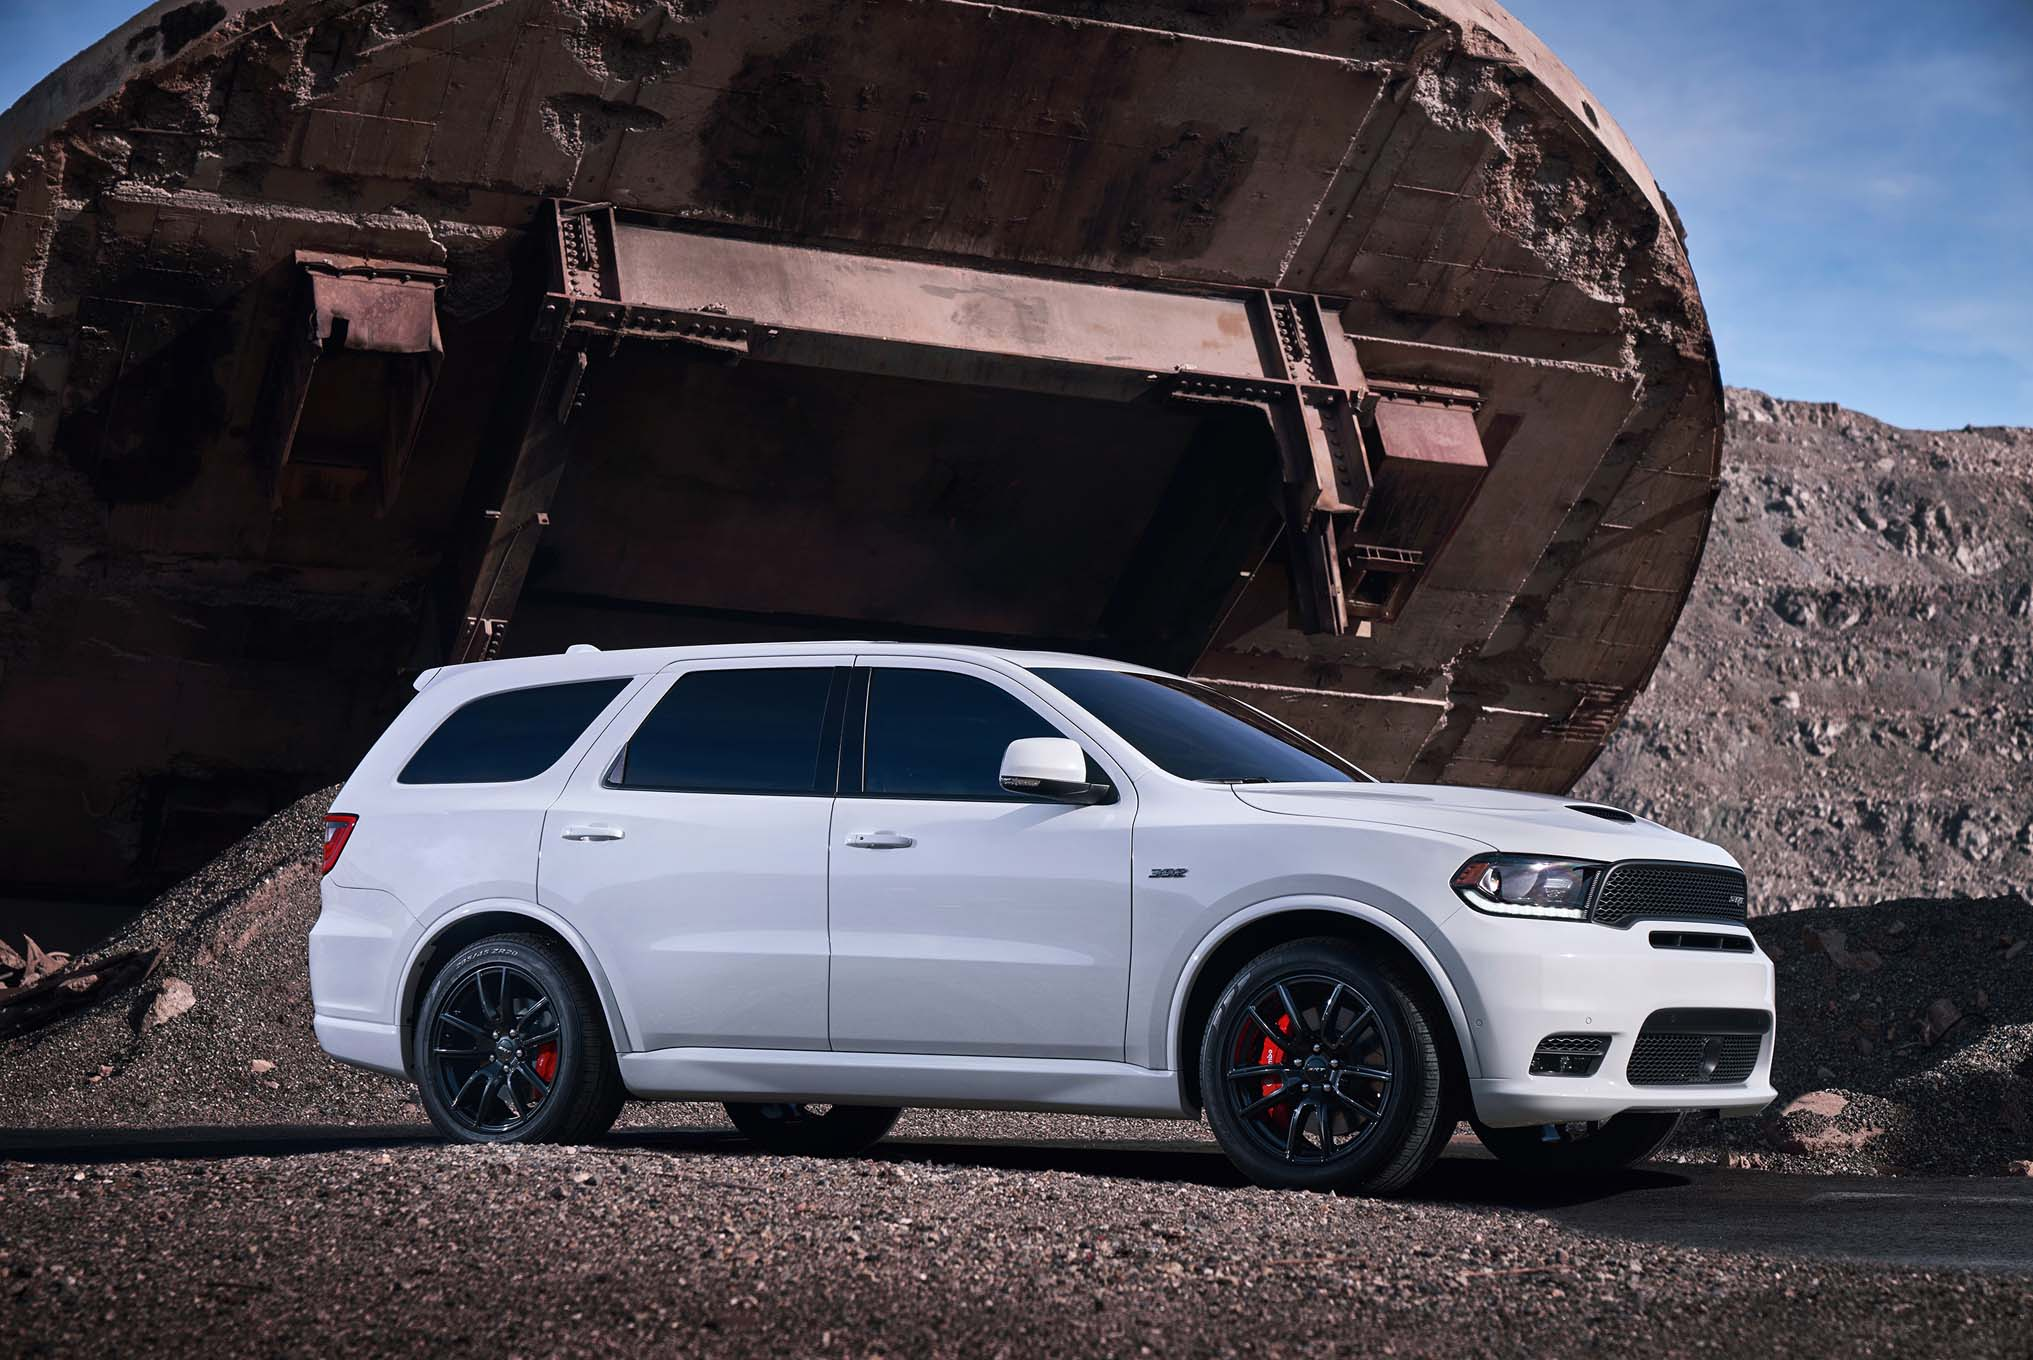 2018 Dodge Durango SRT First Look | Automobile Magazine